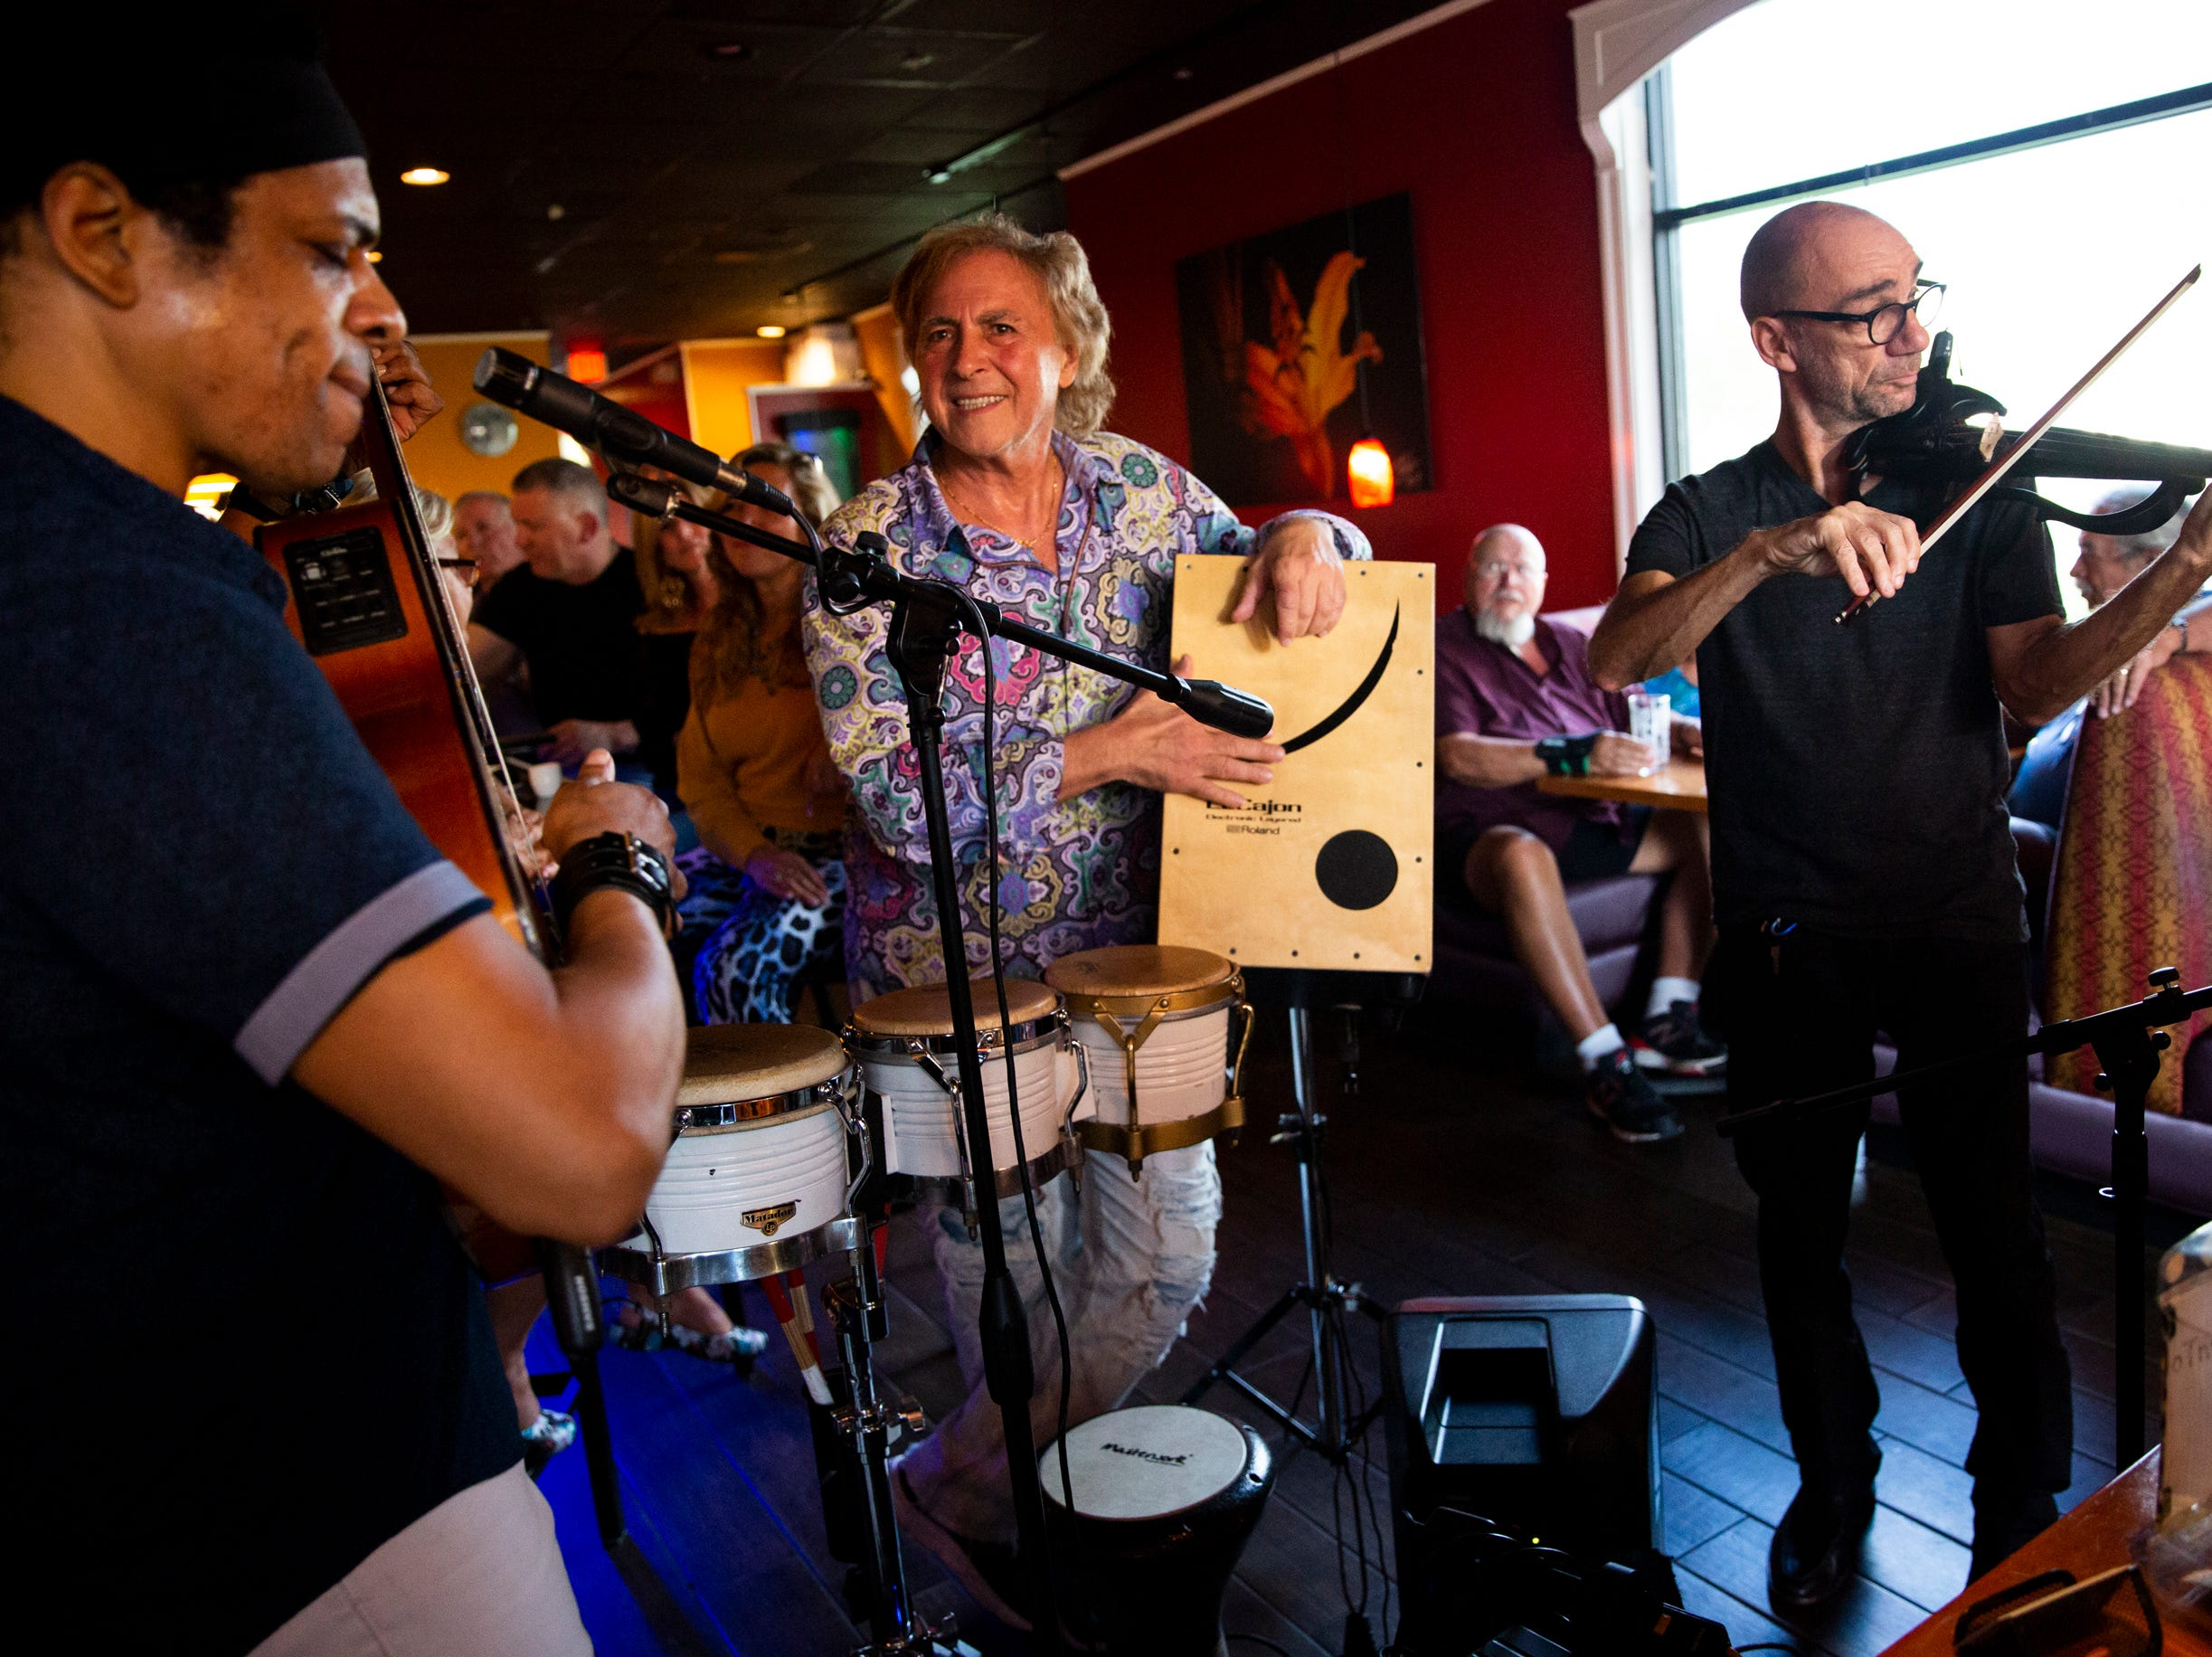 Naples Philharmonic violinist Boris Sandler, right, performs with El Gato Solea and the Flamenco Fusion at Komoon Thai Sushi and Ceviche in Naples on Sunday, March 24, 2019.